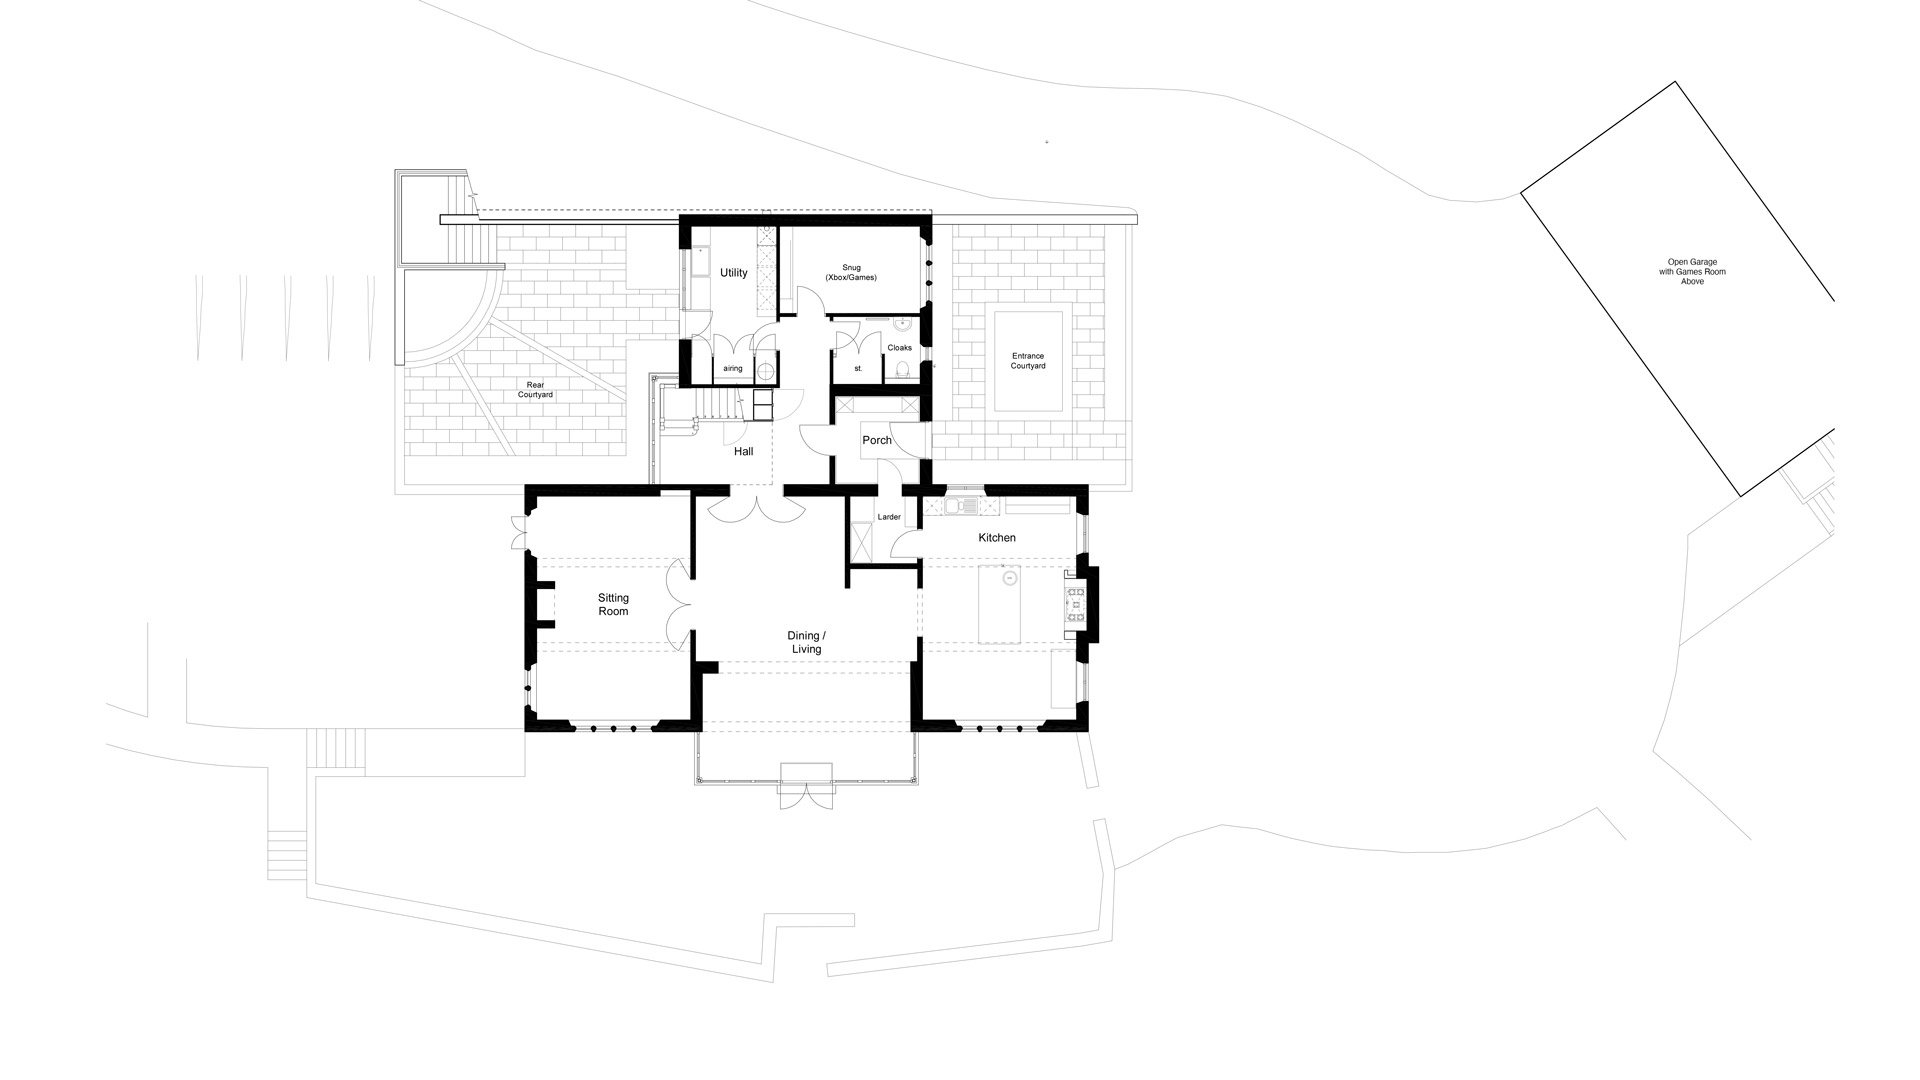 View the floorplan of Dover's Hill House